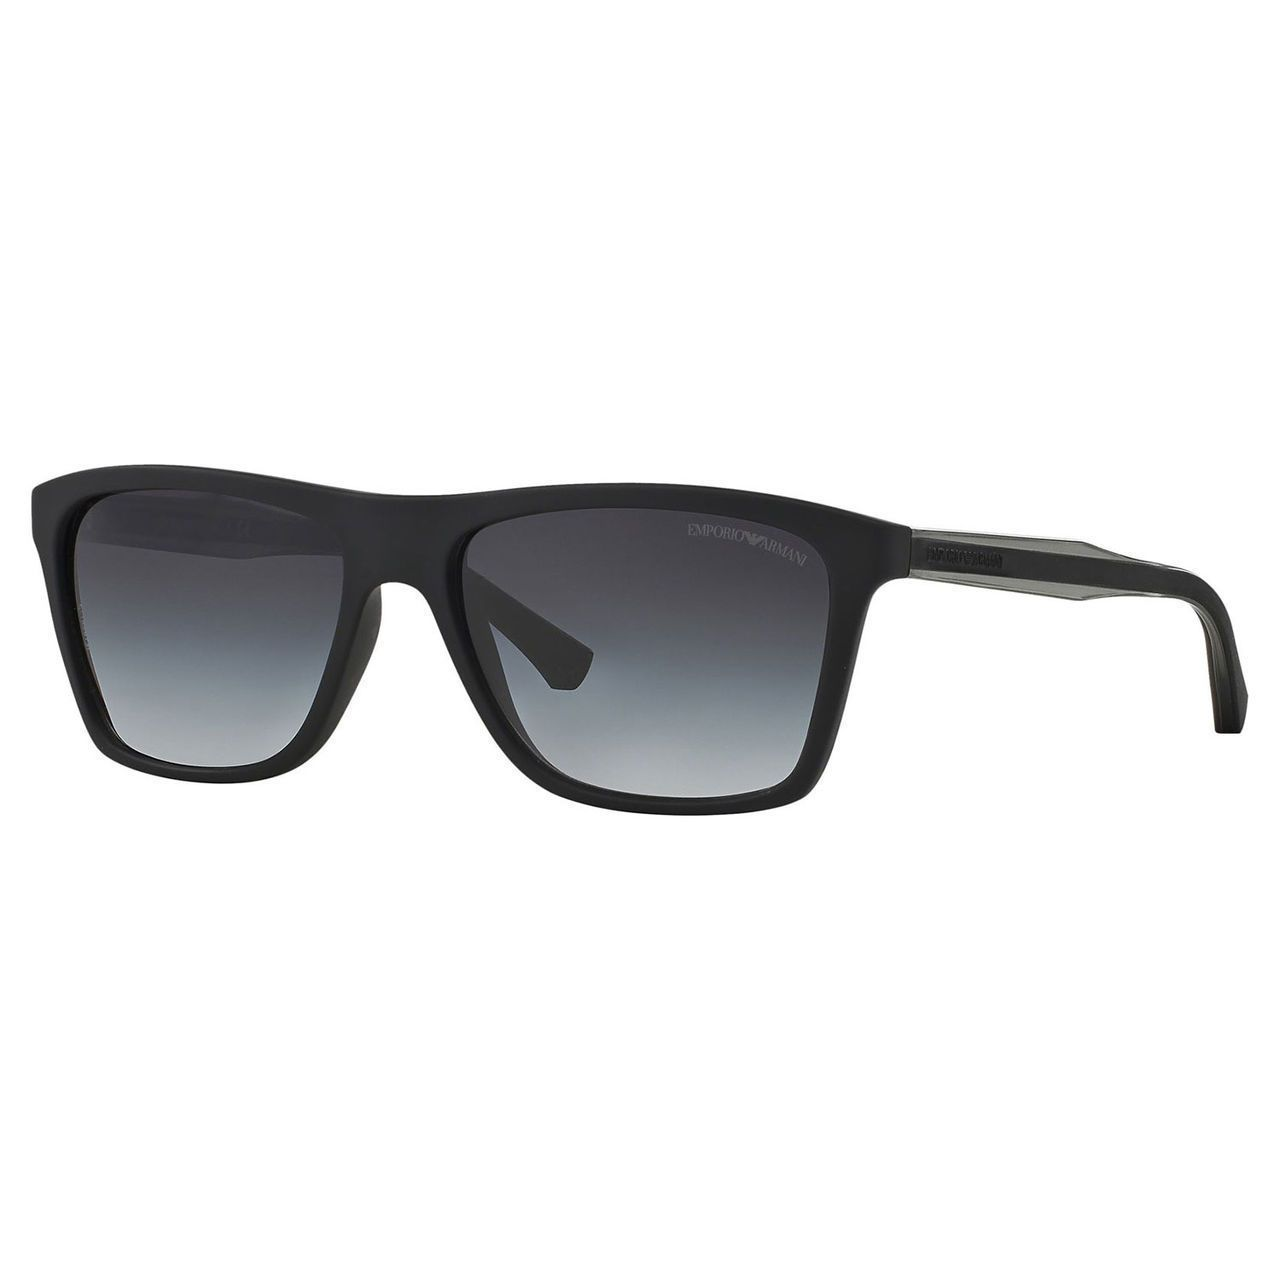 Impress others with your stylish sensibility when you wear these Emporio  Armani sunglasses for men. The sleek black and grey c… b9b1bc6c2e64